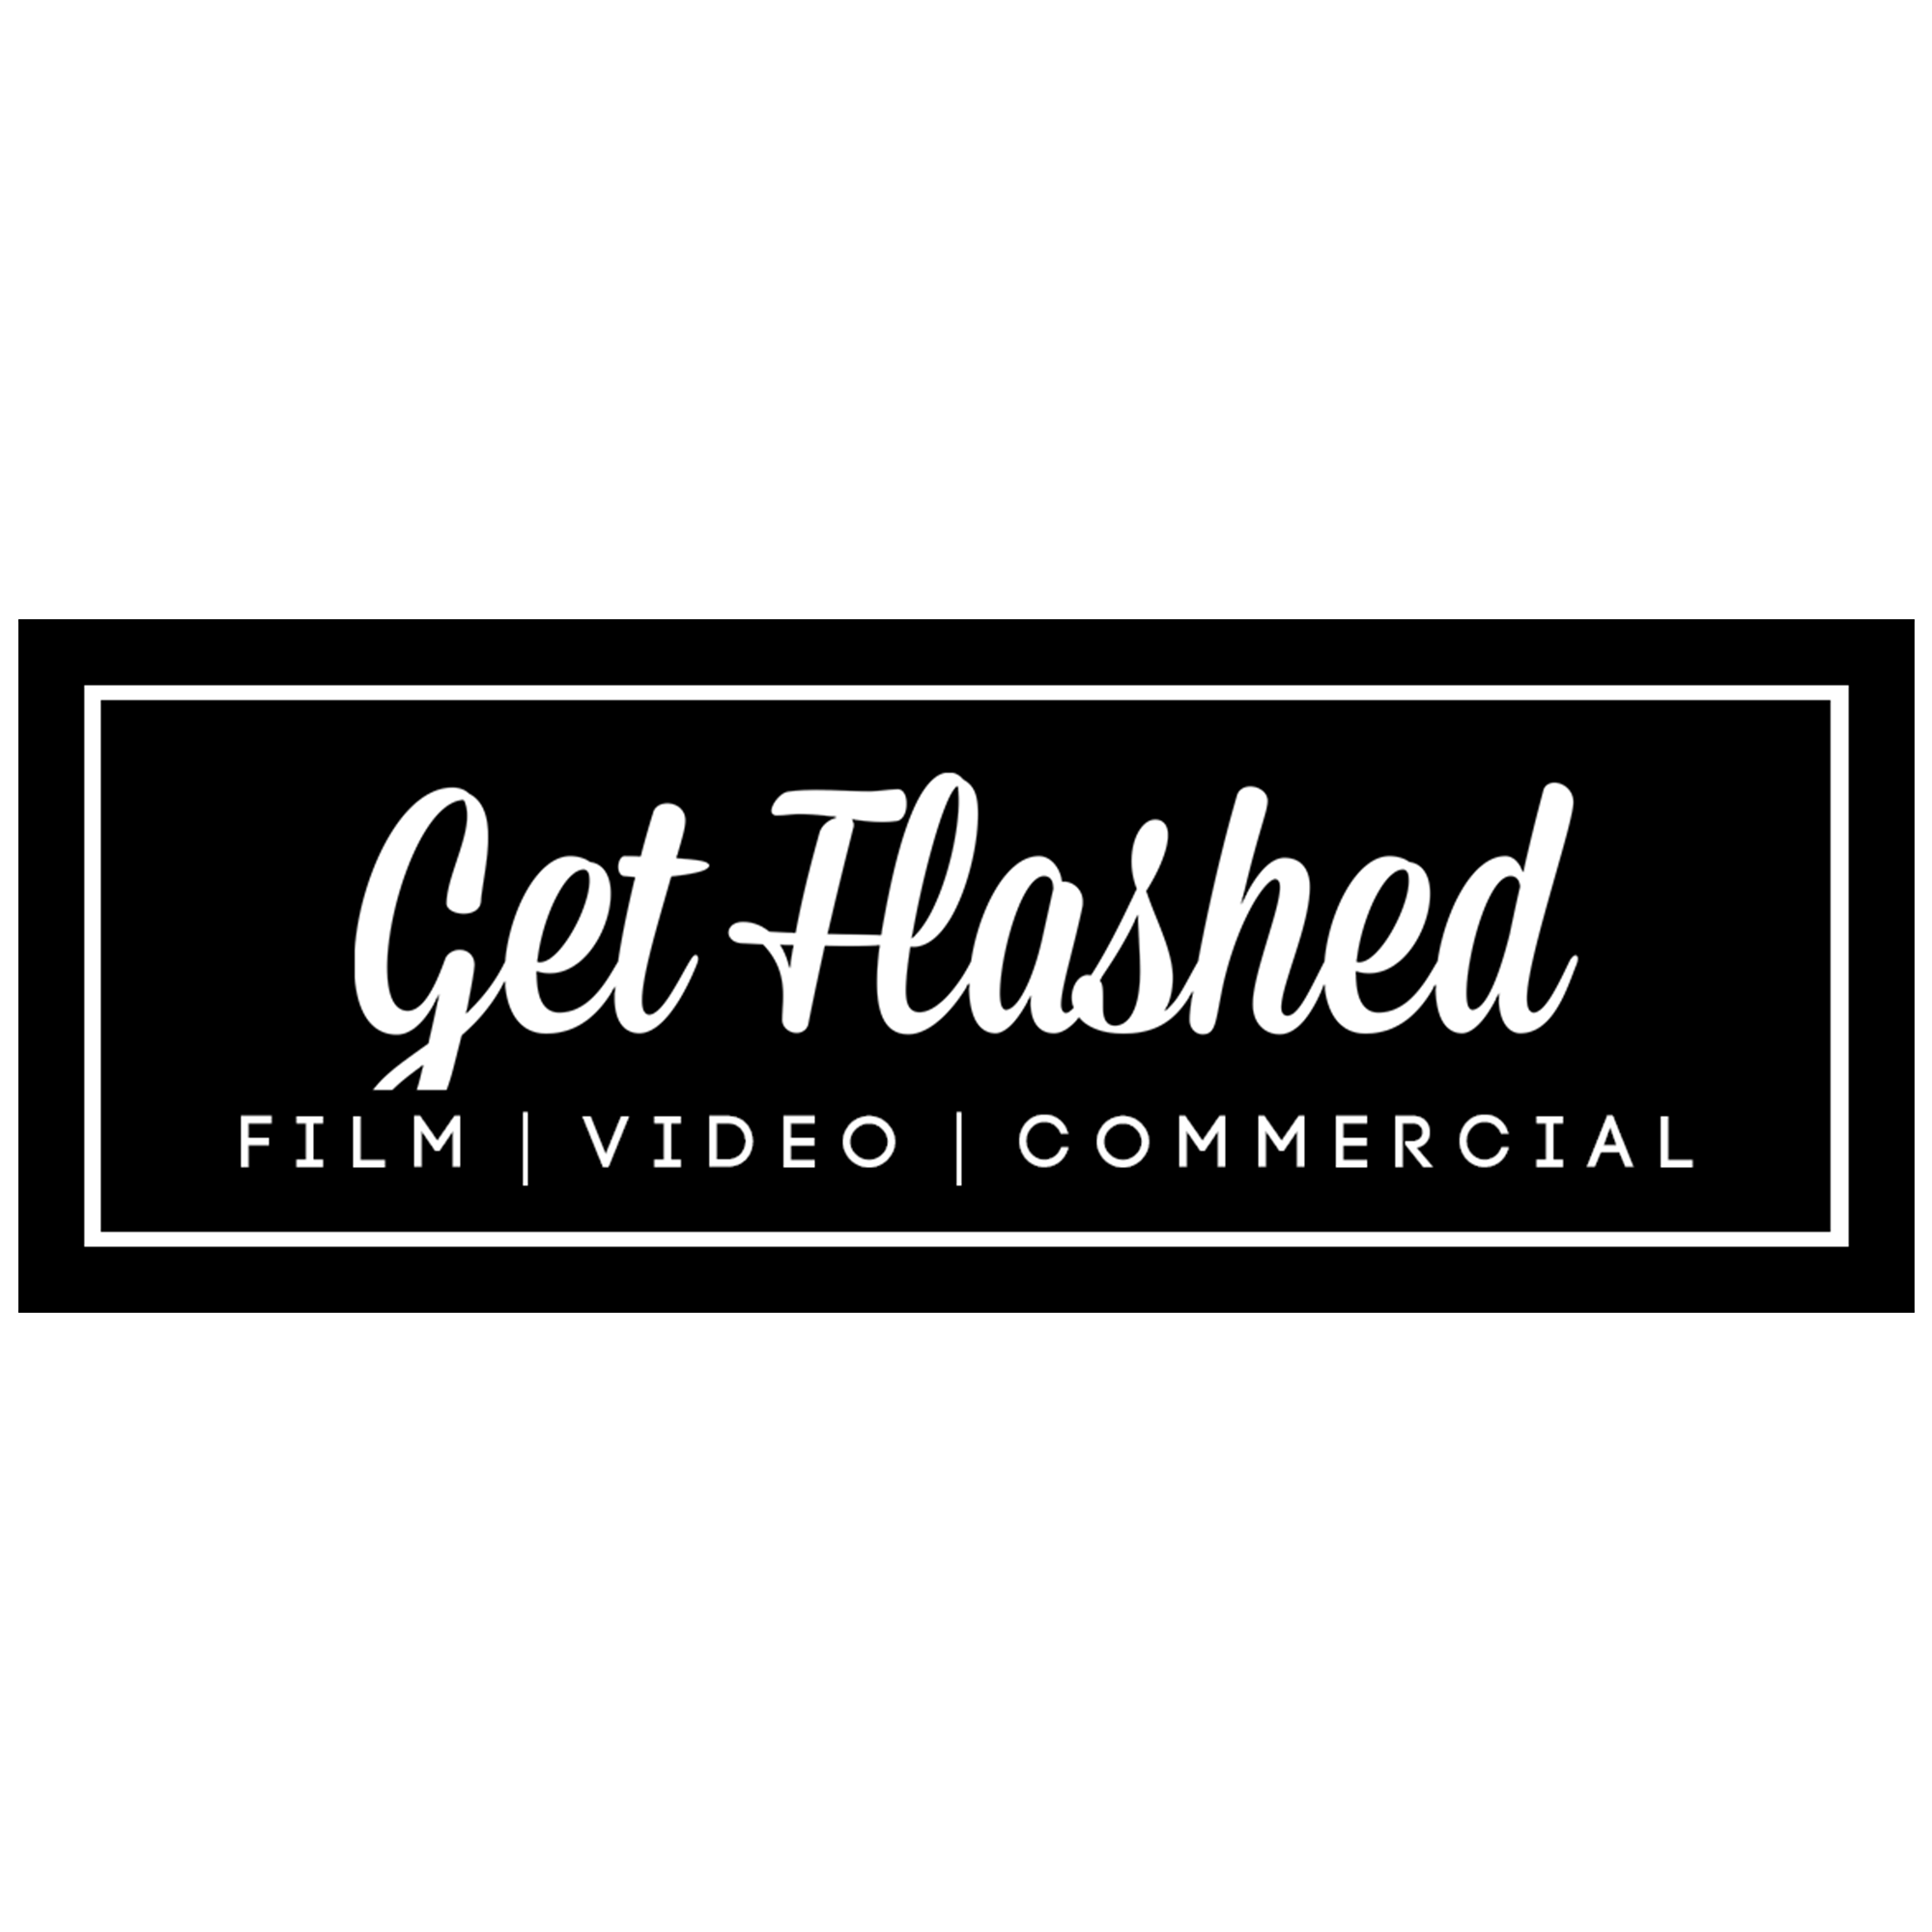 Get Flashed Media GmbH